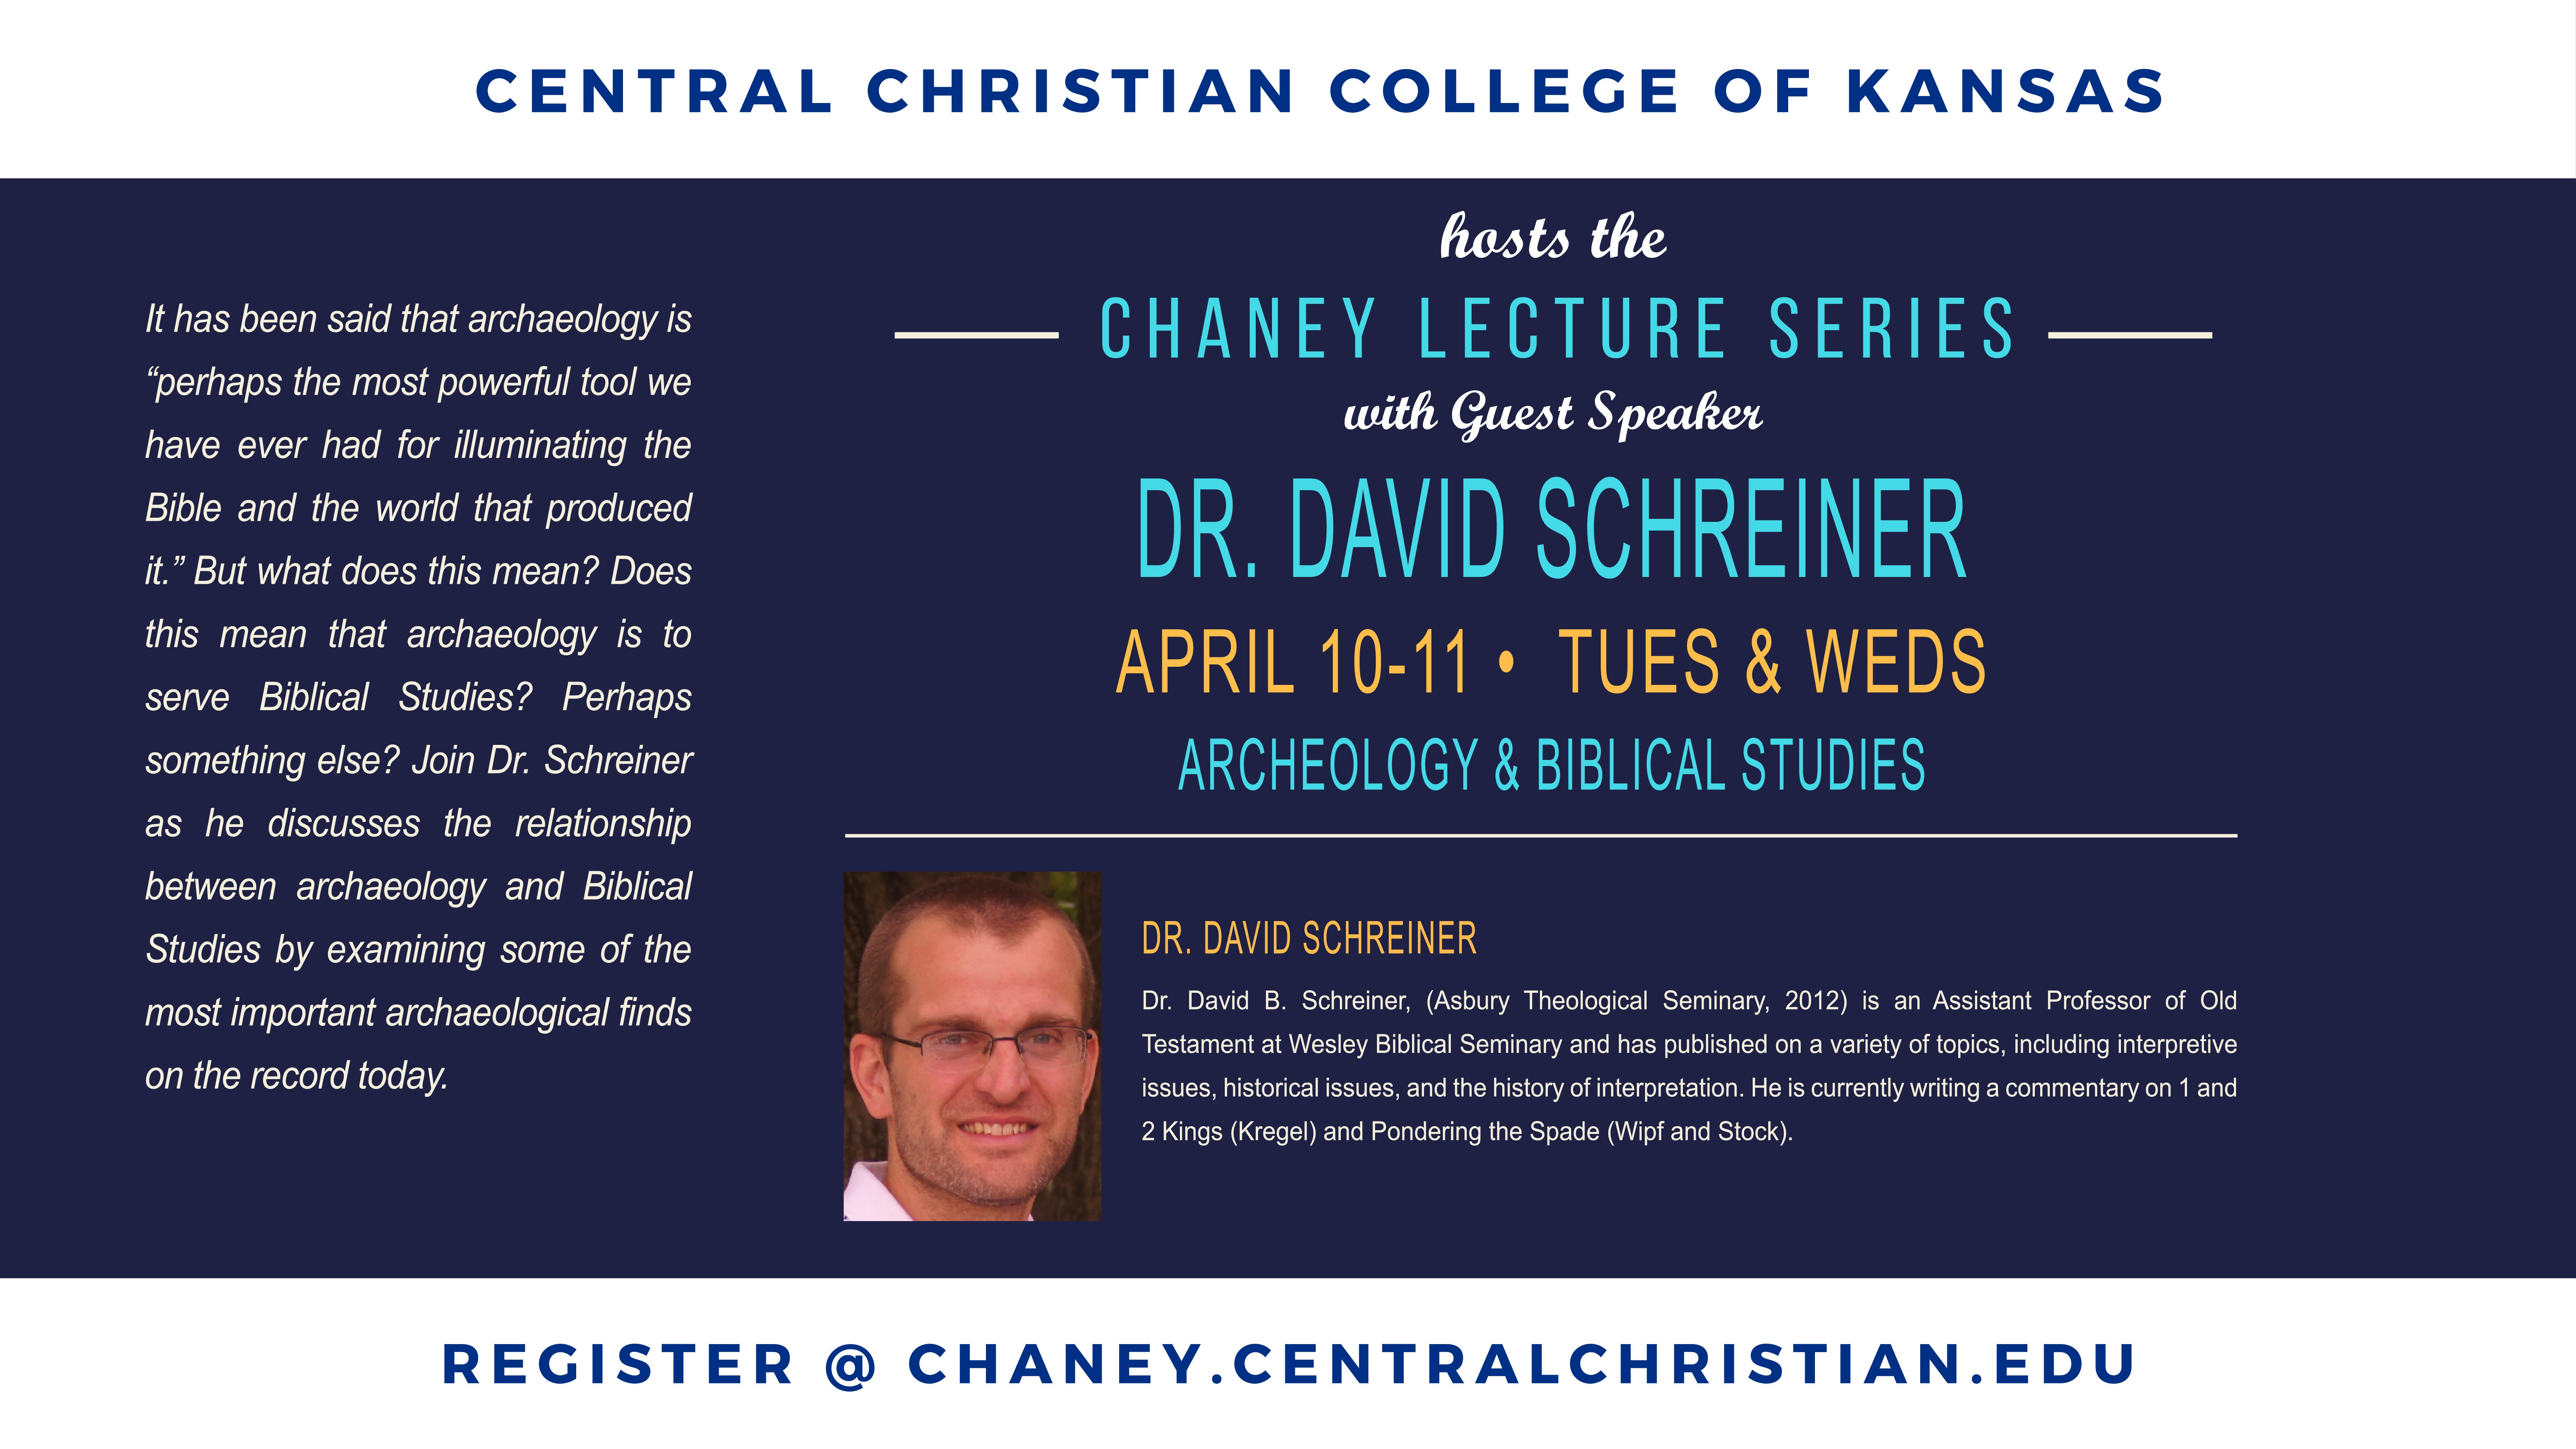 Central Christian College of Kansas proudly hosts the Chaney Lecture Series with guest speaker, Dr. David B. Schreiner.